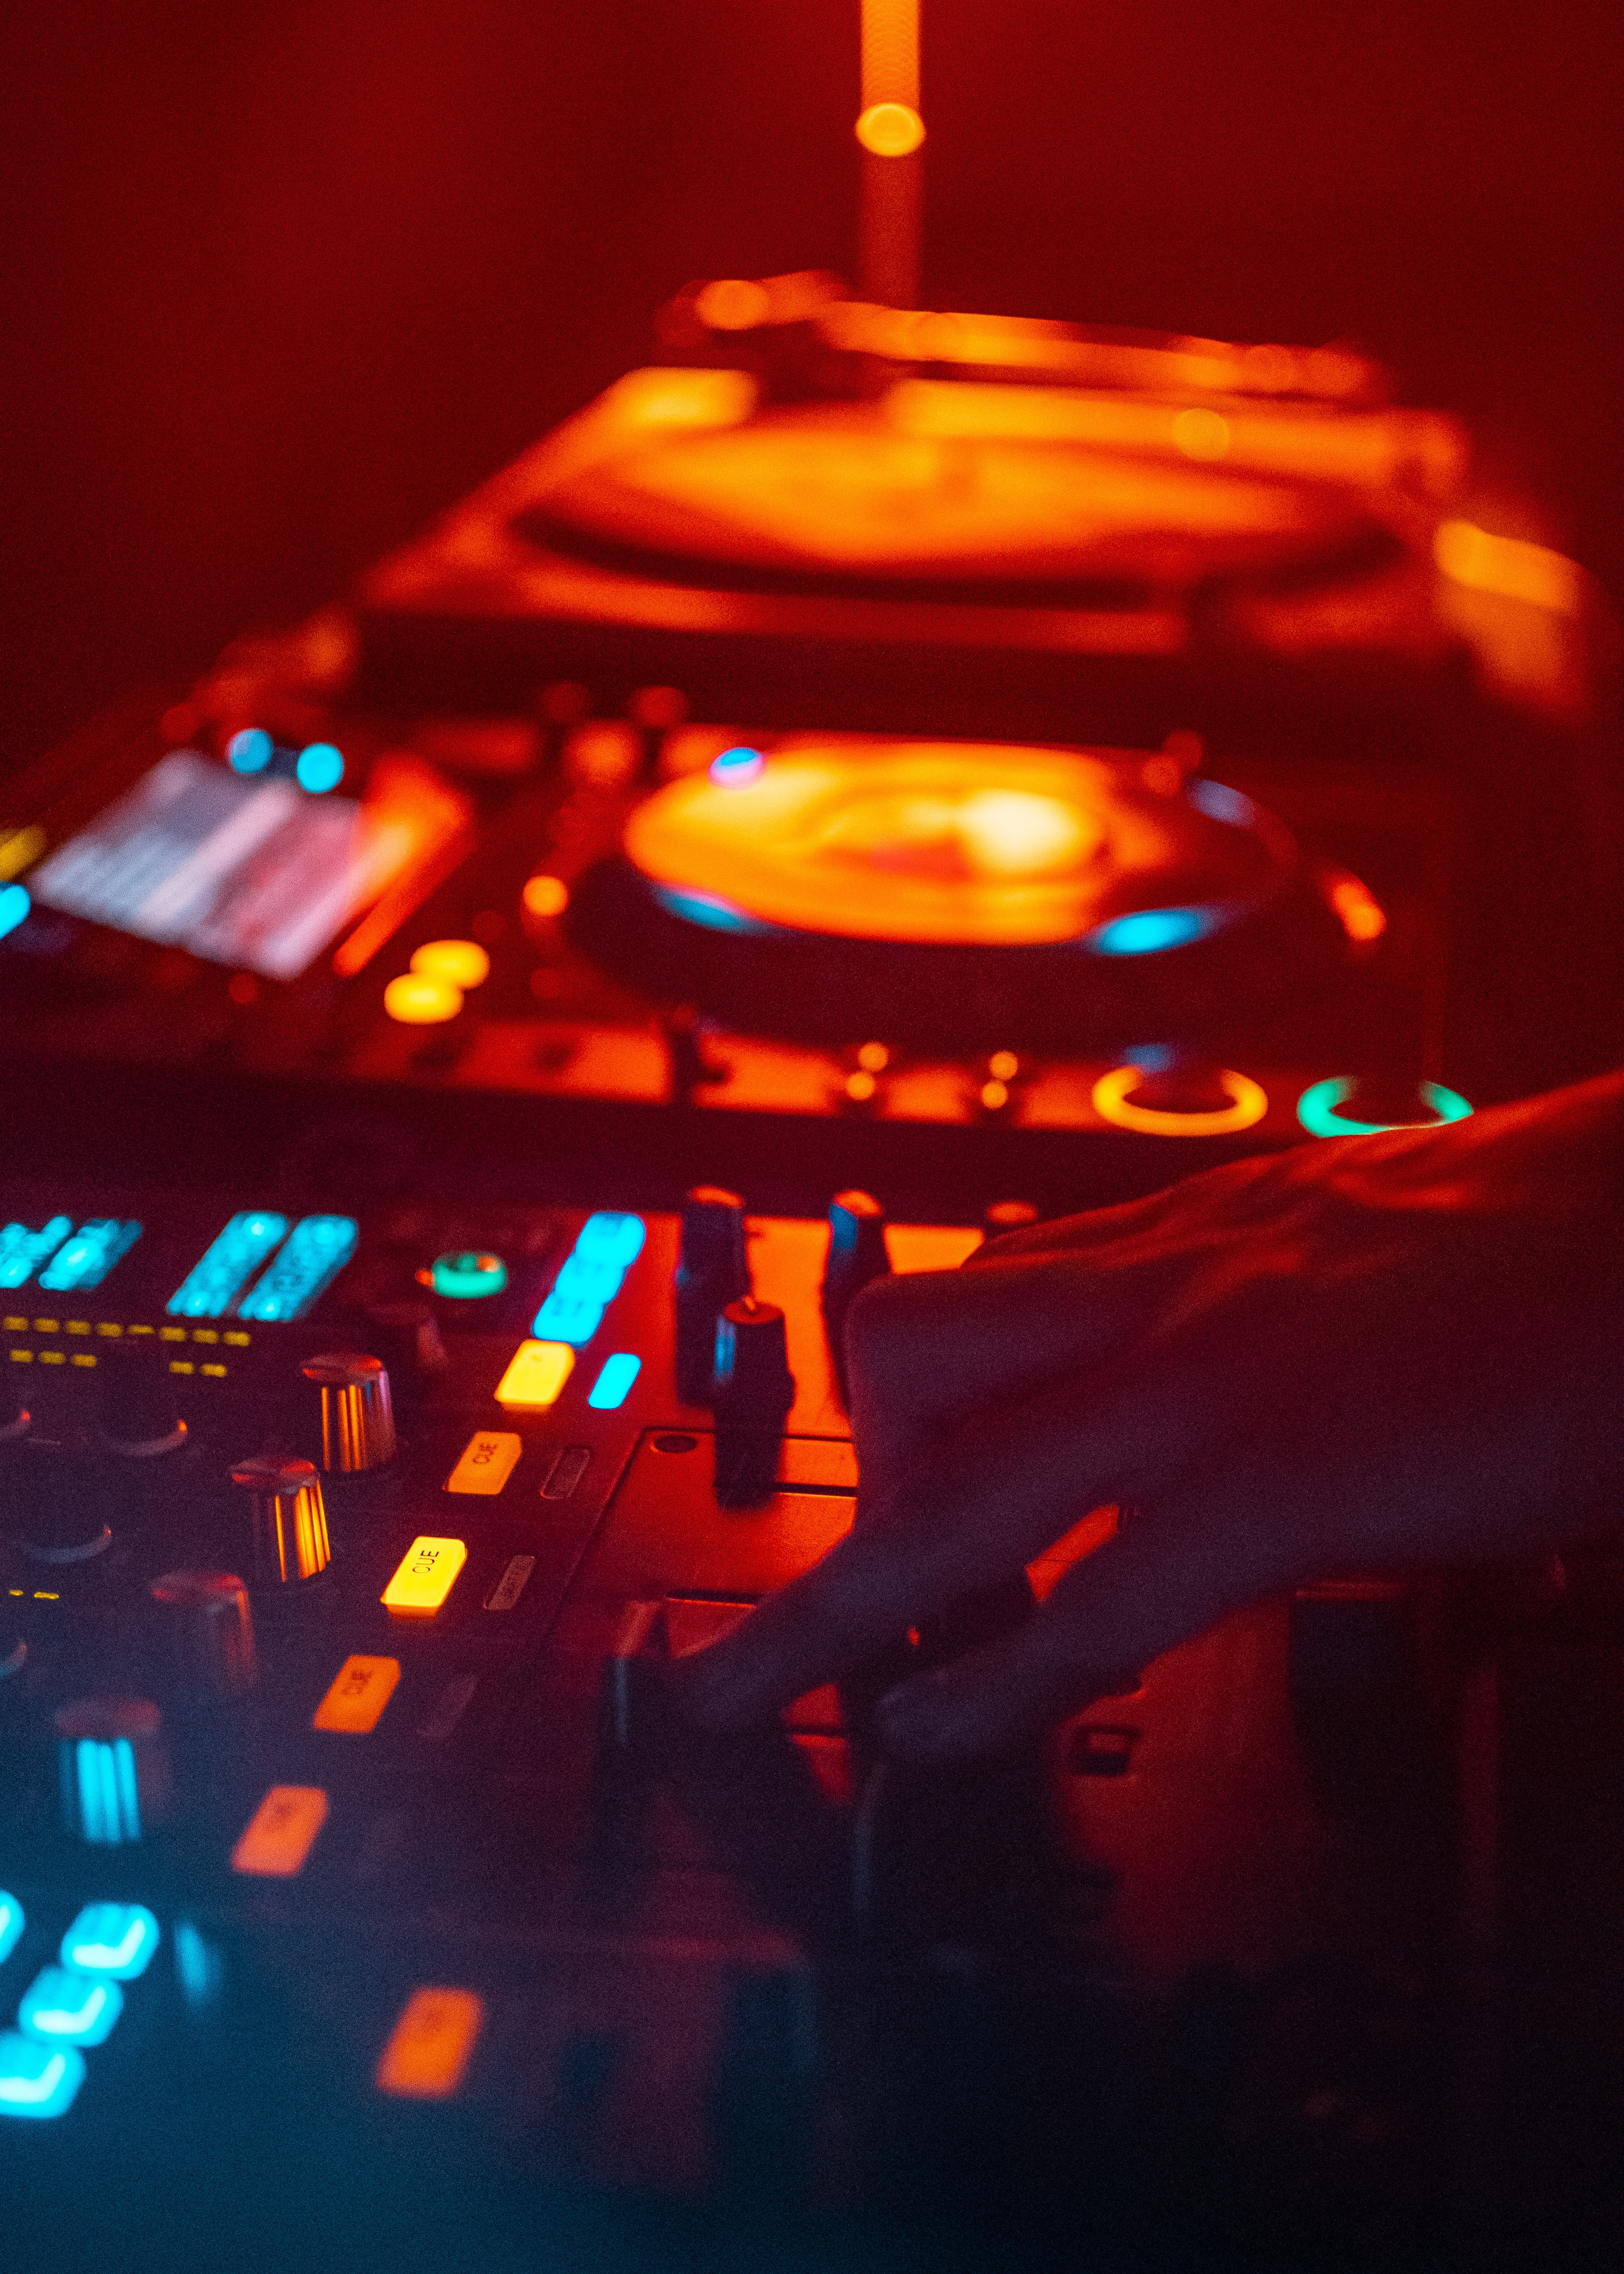 134517 Screensavers and Wallpapers Hand for phone. Download Music, Dj, Mixer, Hand, Equalizer, Electronic pictures for free